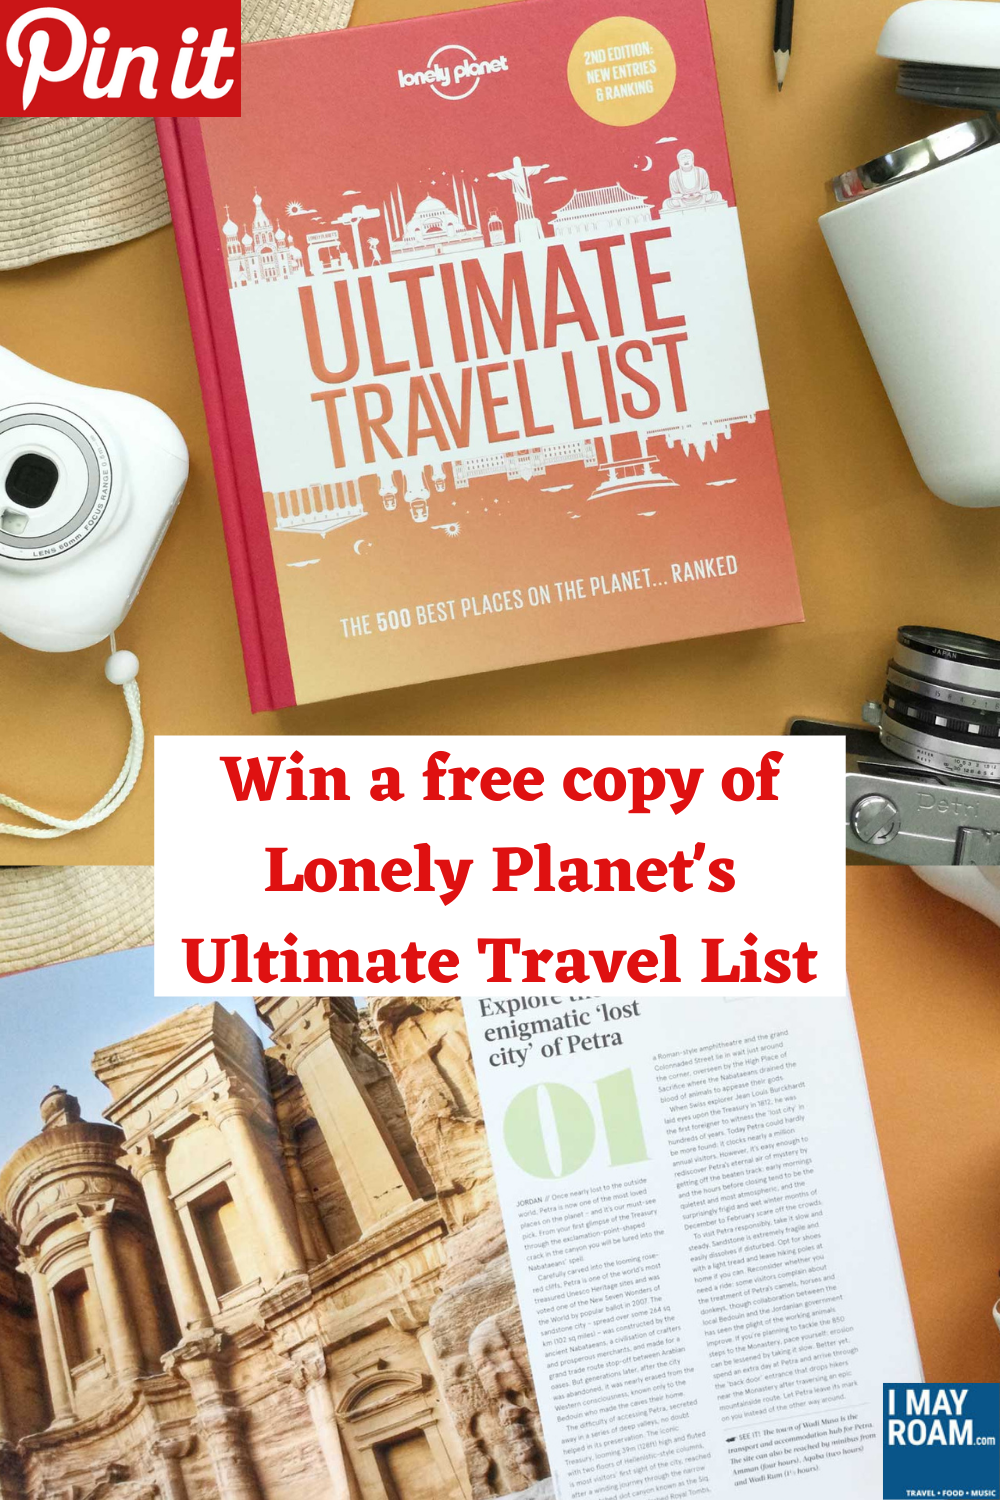 Pinterest Win a free copy of Lonely Planet's Ultimate Travel List